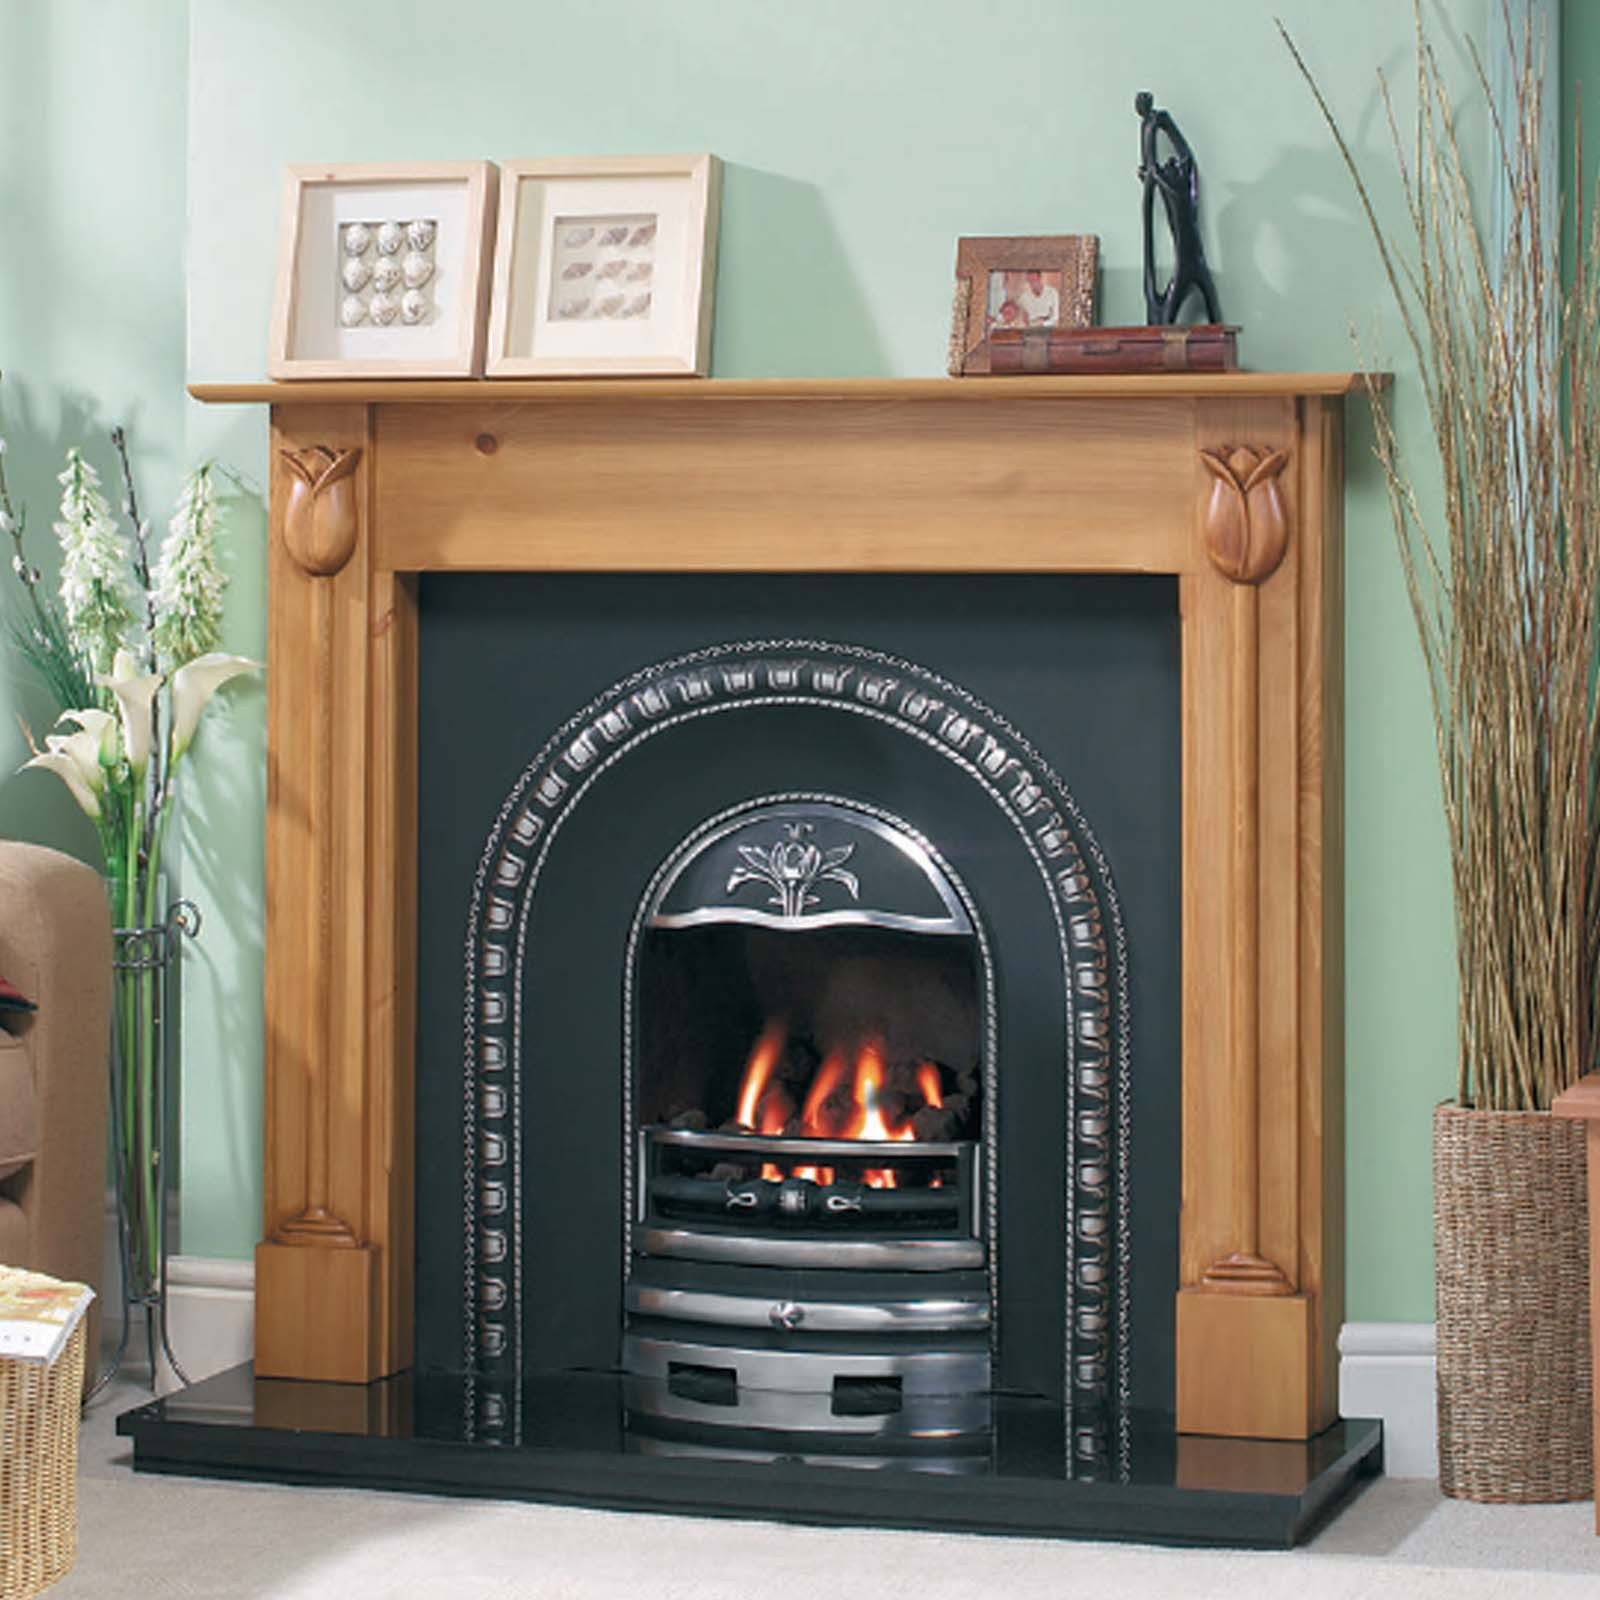 Electric Coal Fireplace Classic Design Cast Tec Tulip Arch Fireplace Insert